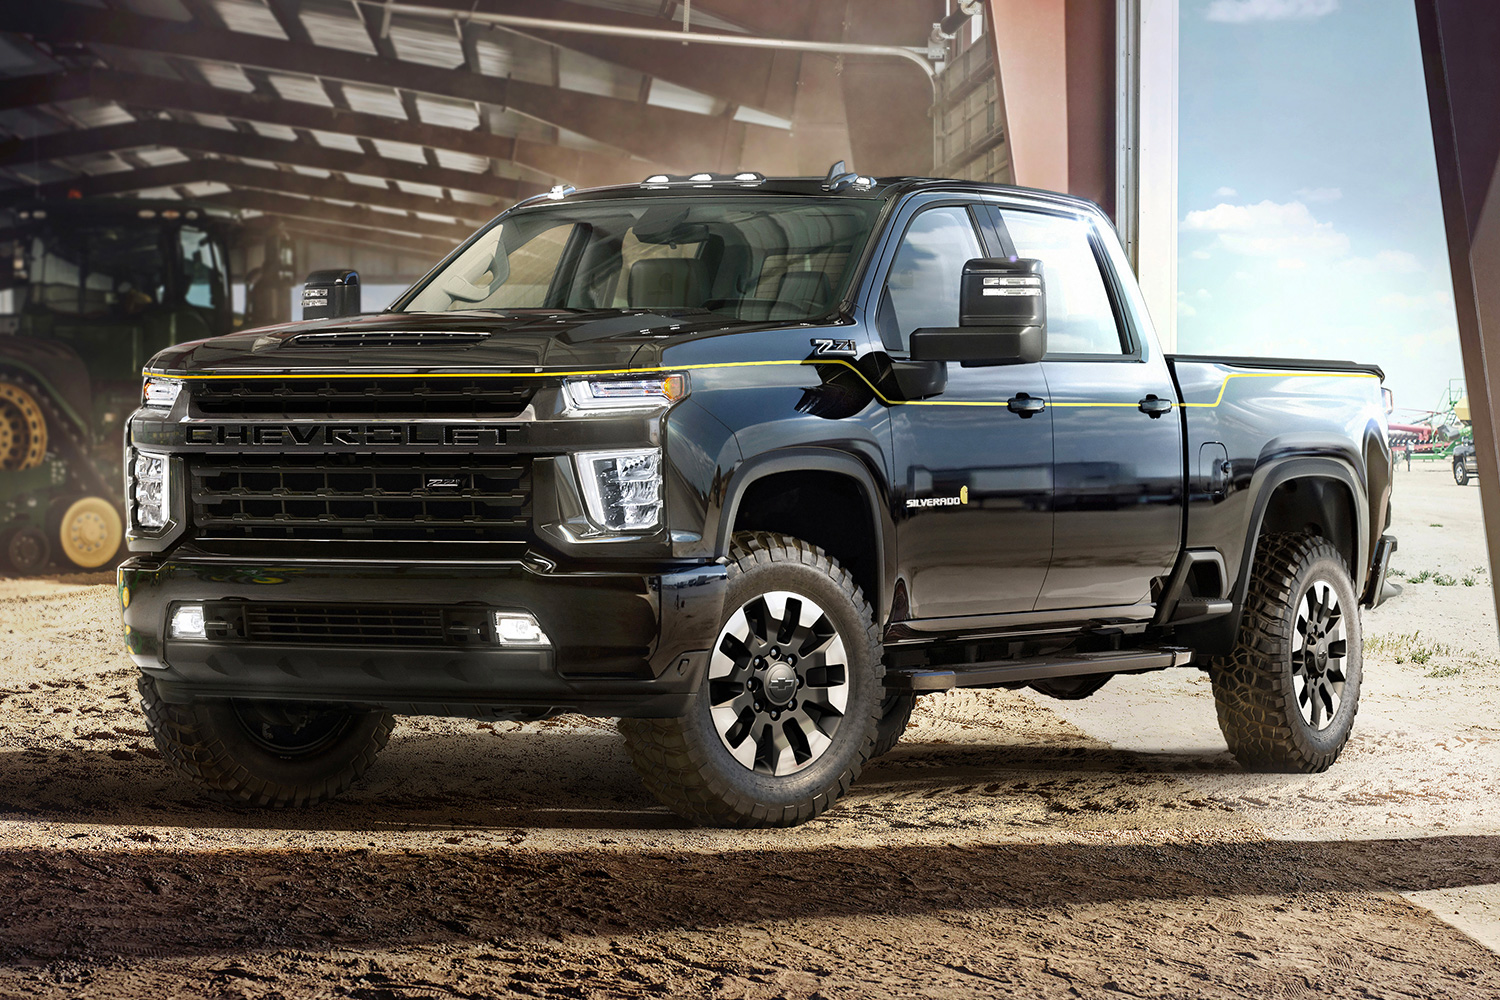 Carhartt & Chevy Team Up On Special Edition 2021 Silverado at werd.com